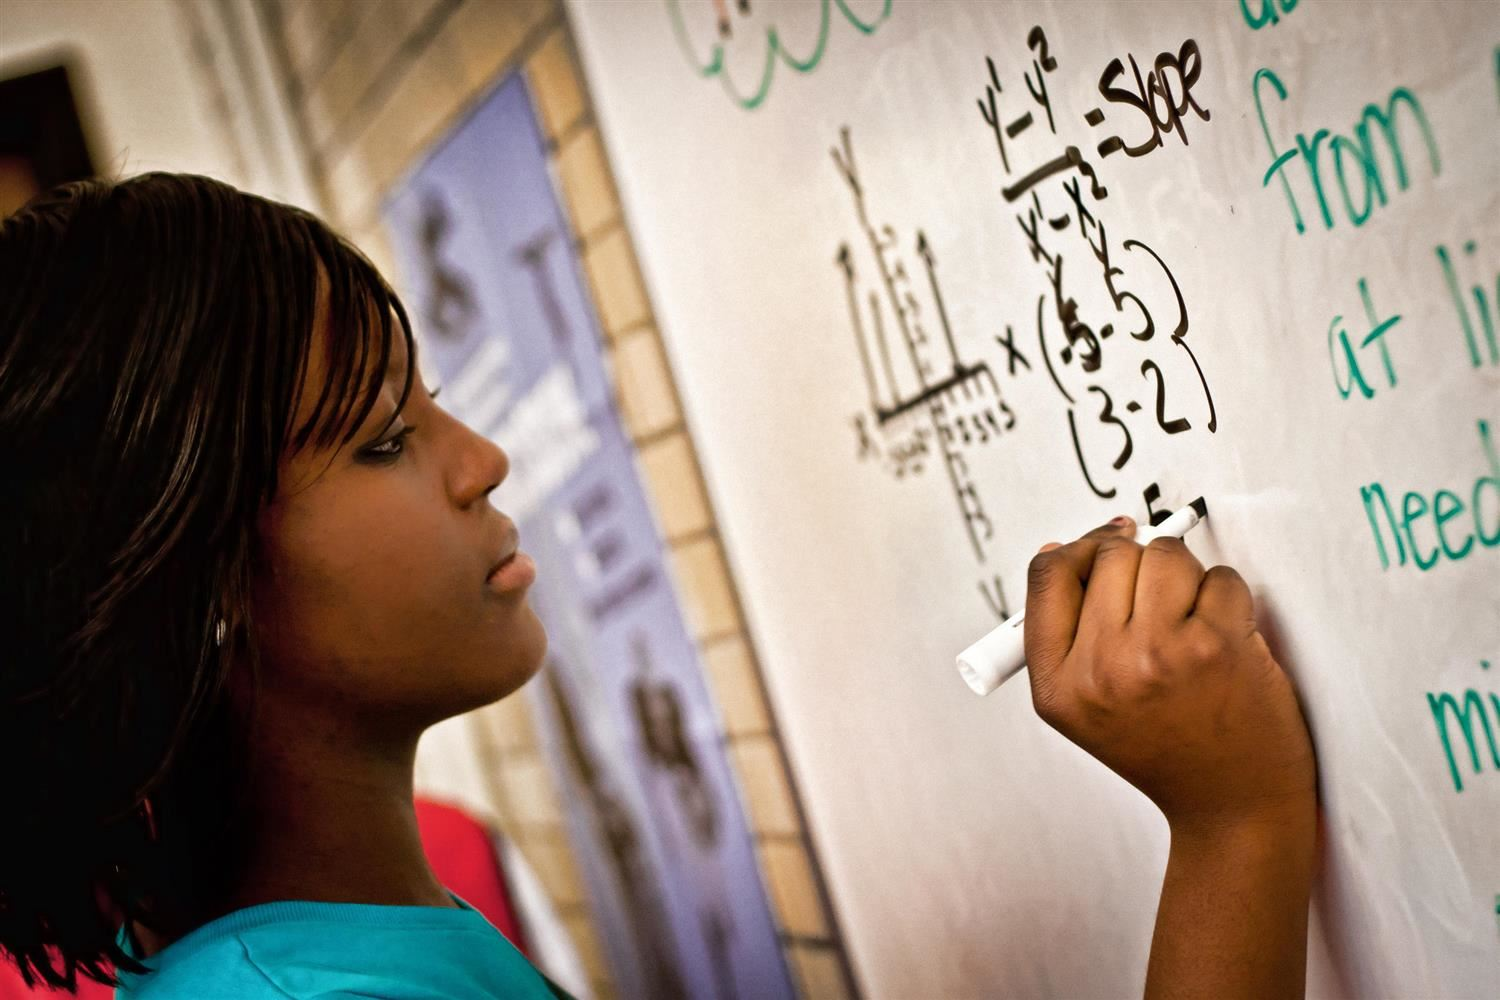 St. Louis Public Radio: Math314 Tries To Help Students Do More Than Memorize Math Equations